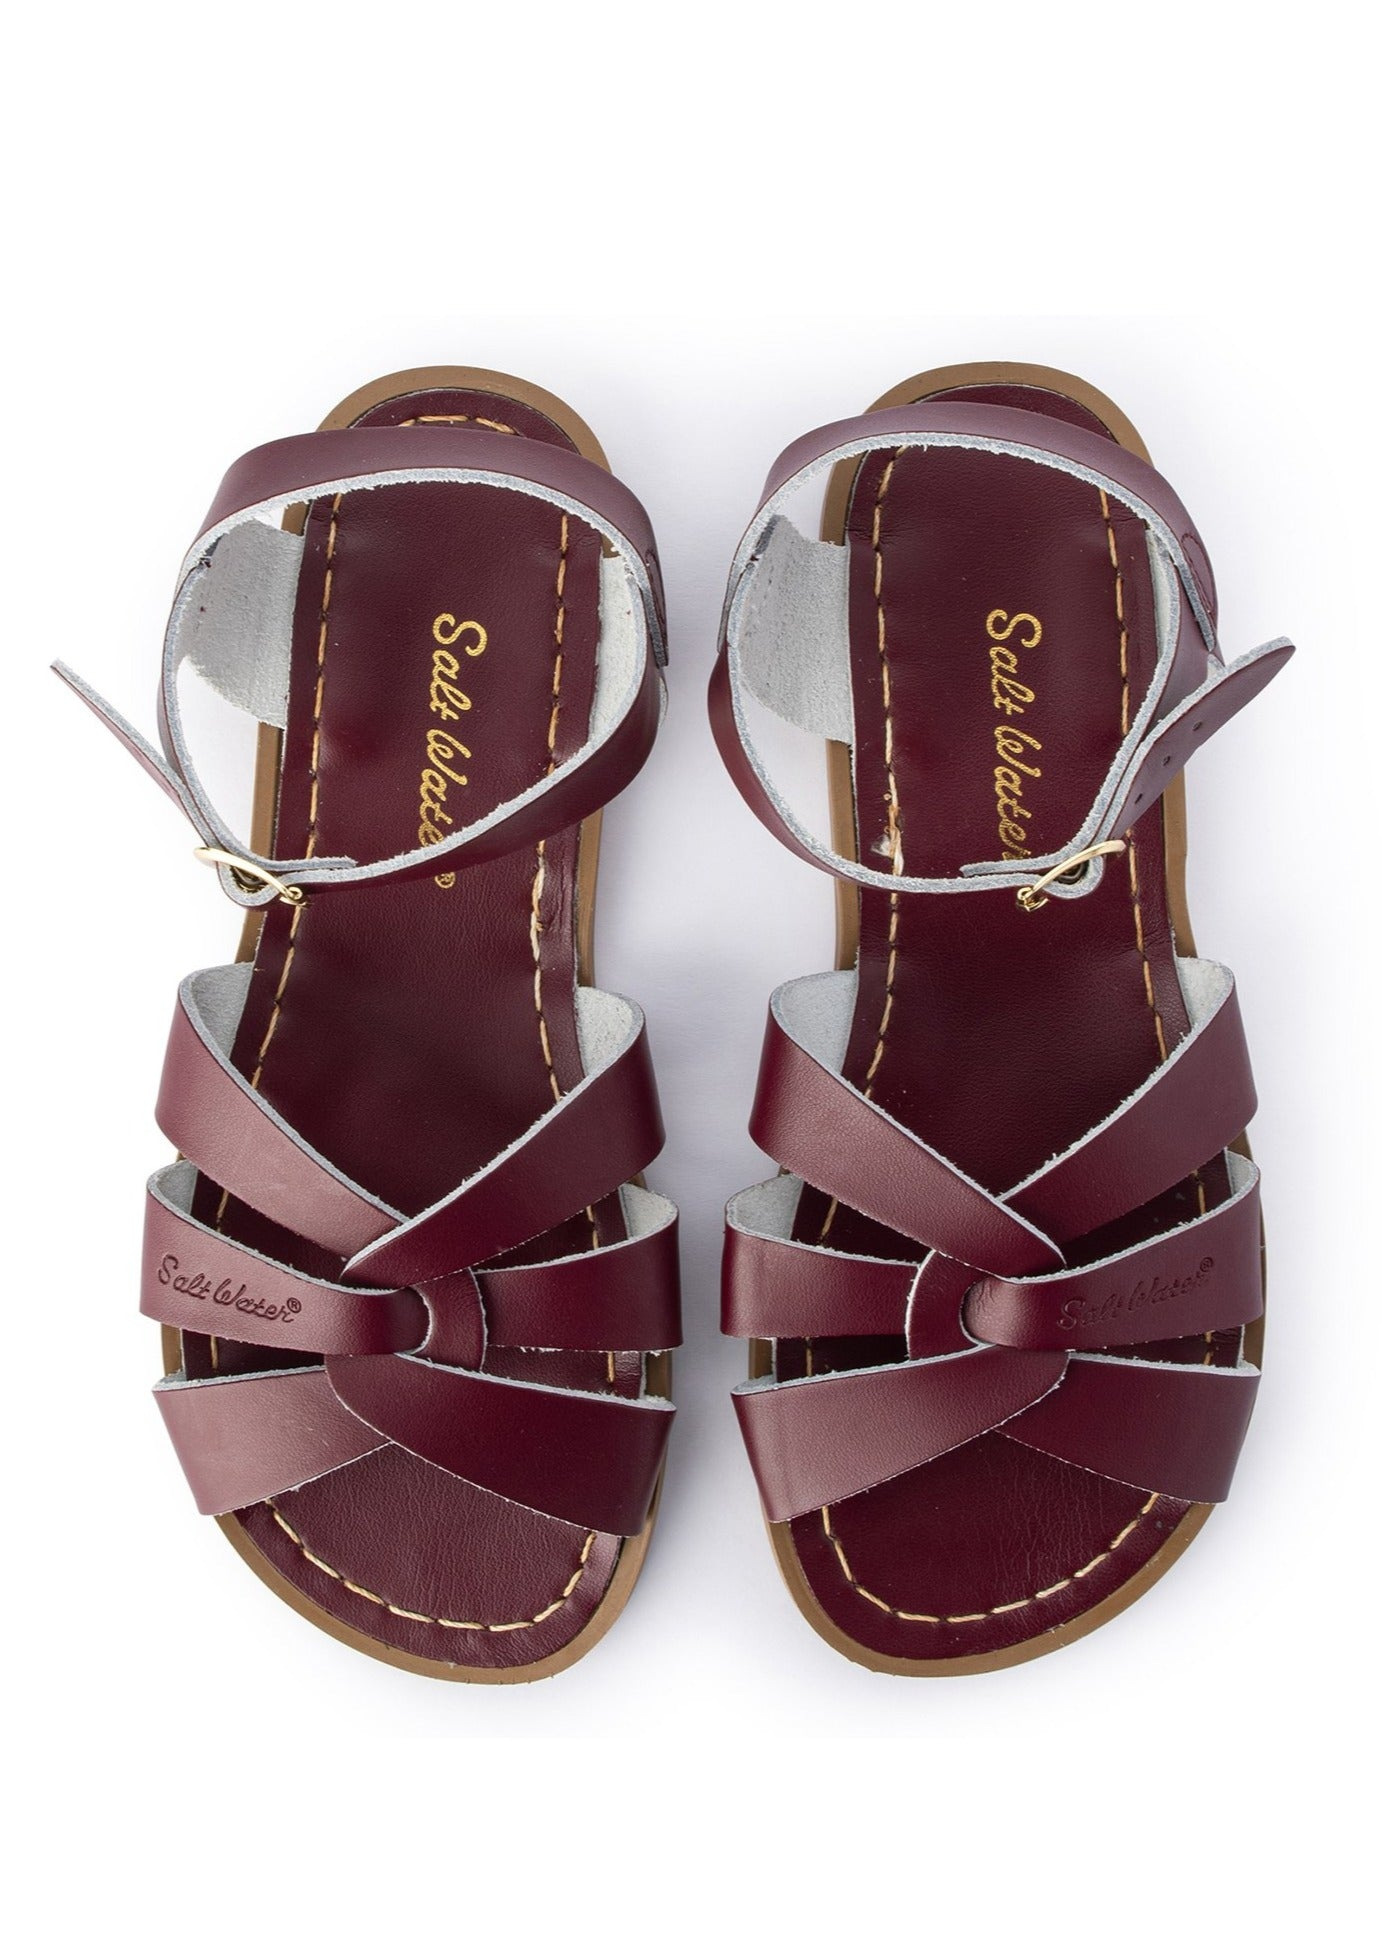 Claret Salt Water Sandals - Original